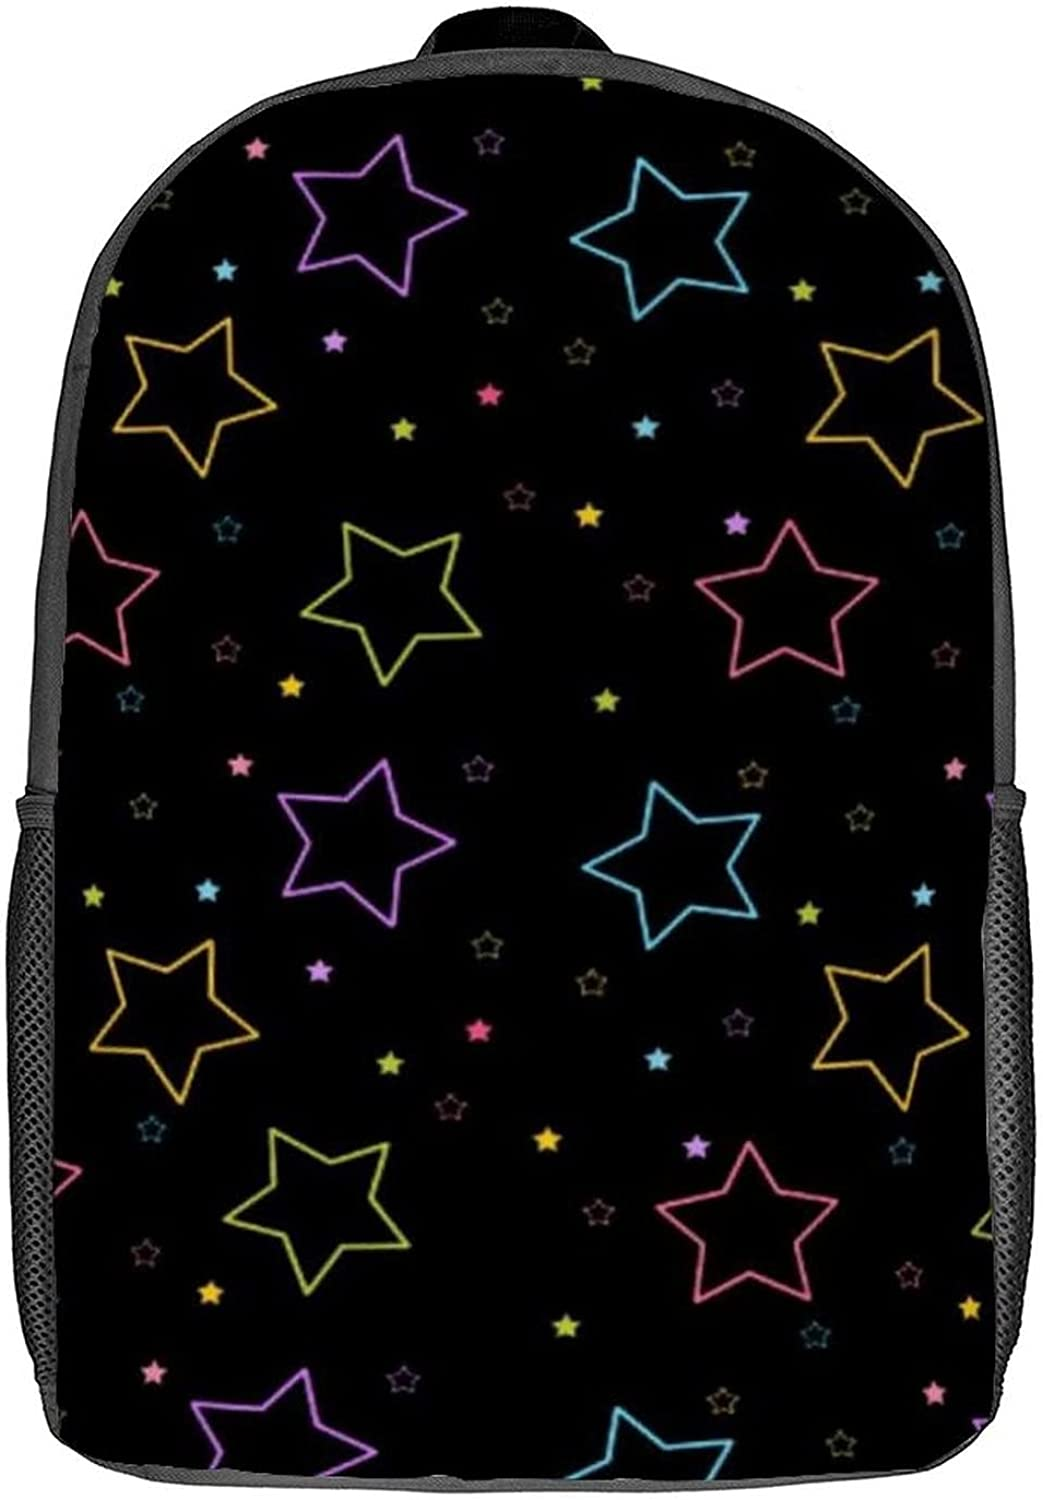 LINYANDIKAI Christmas trend rank Things 17 inch Year-end annual account Fashion Laptop Bac backpack